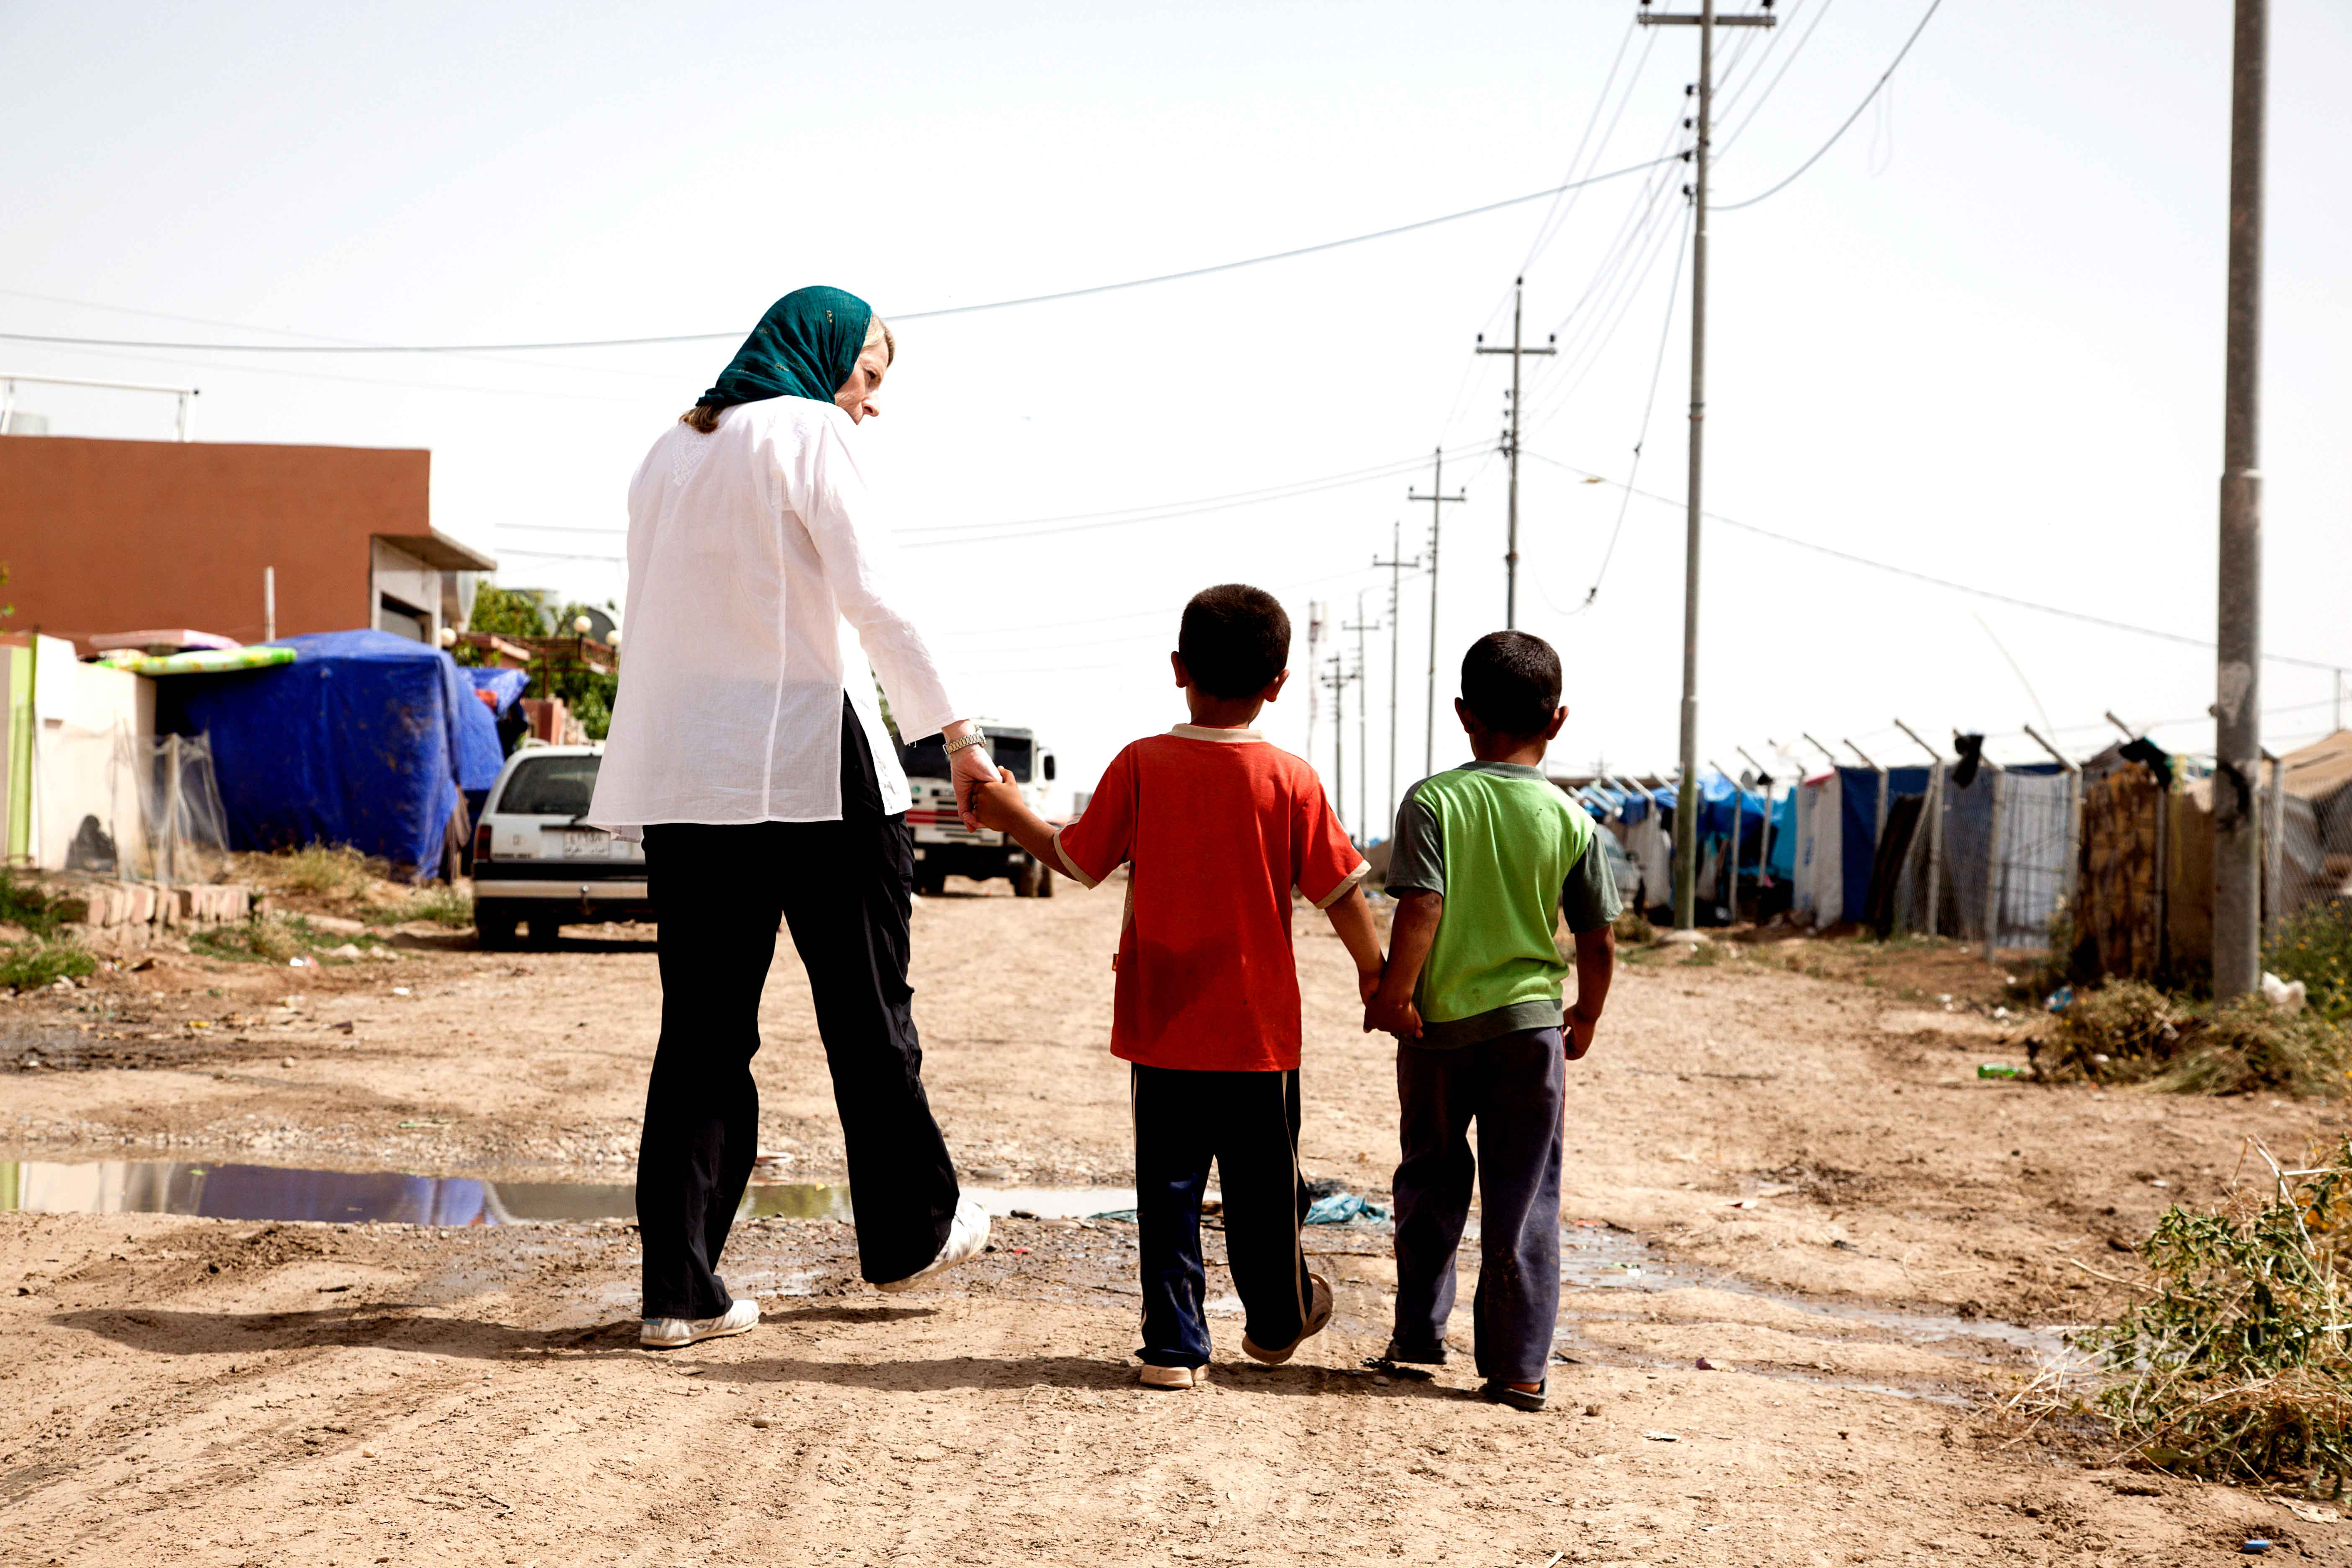 Above, Miles visits a refugee camp in Northern Iraq, home to many refugees fleeing violence in Syria. (Photo courtesy of Save the Children)